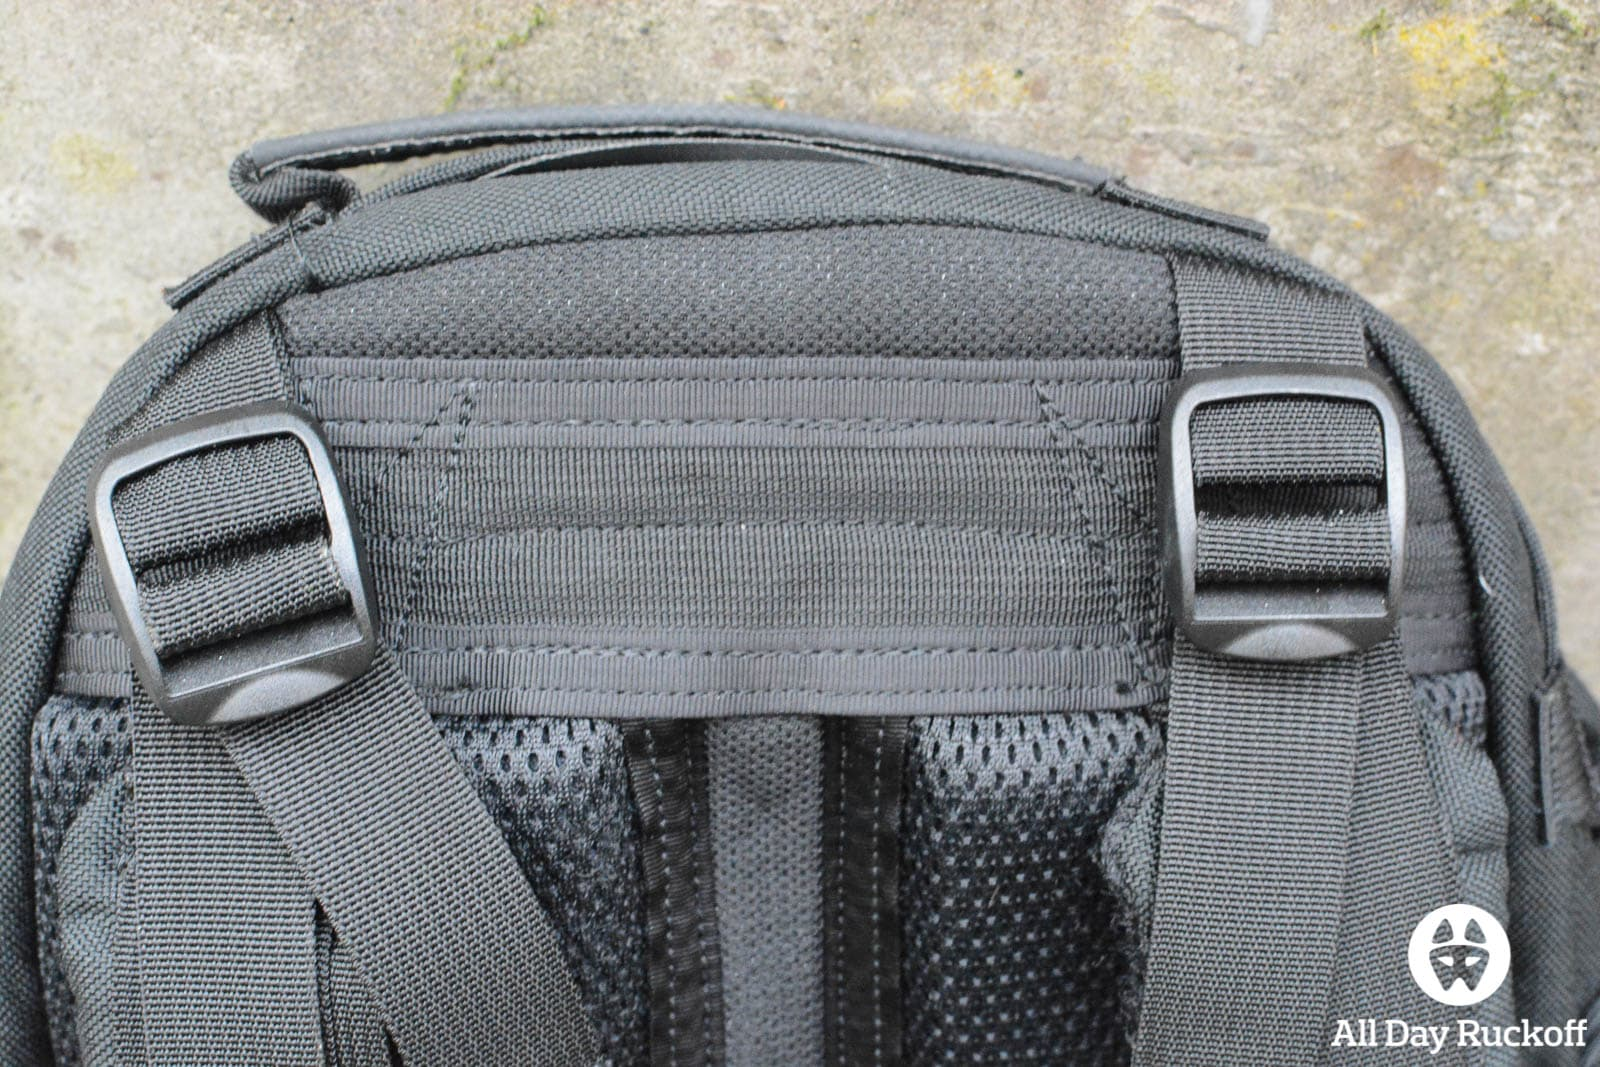 Triple Aught Design Litespeed Review - Back Top Stitching